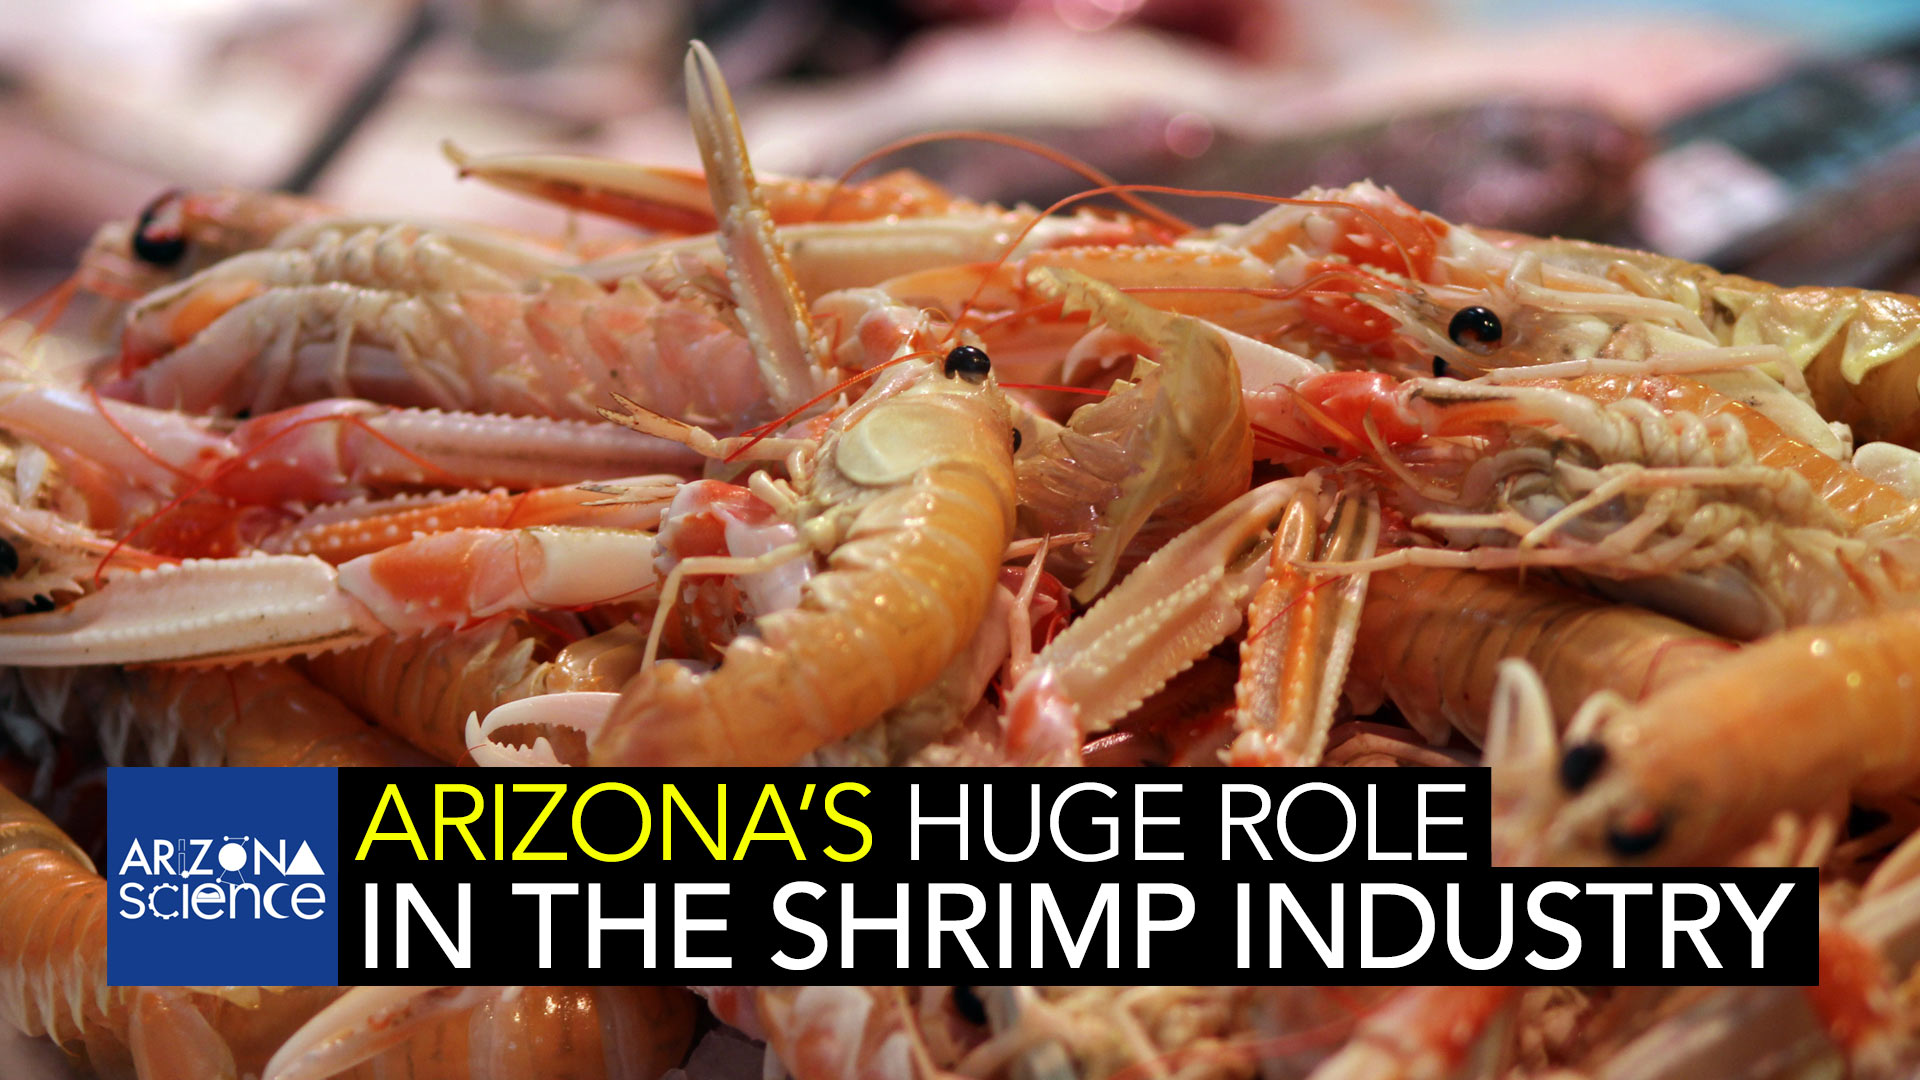 Most people don't think Arizona when they think shrimp. But the research being done in our desert state is a critical part of the worldwide shrimp industry.